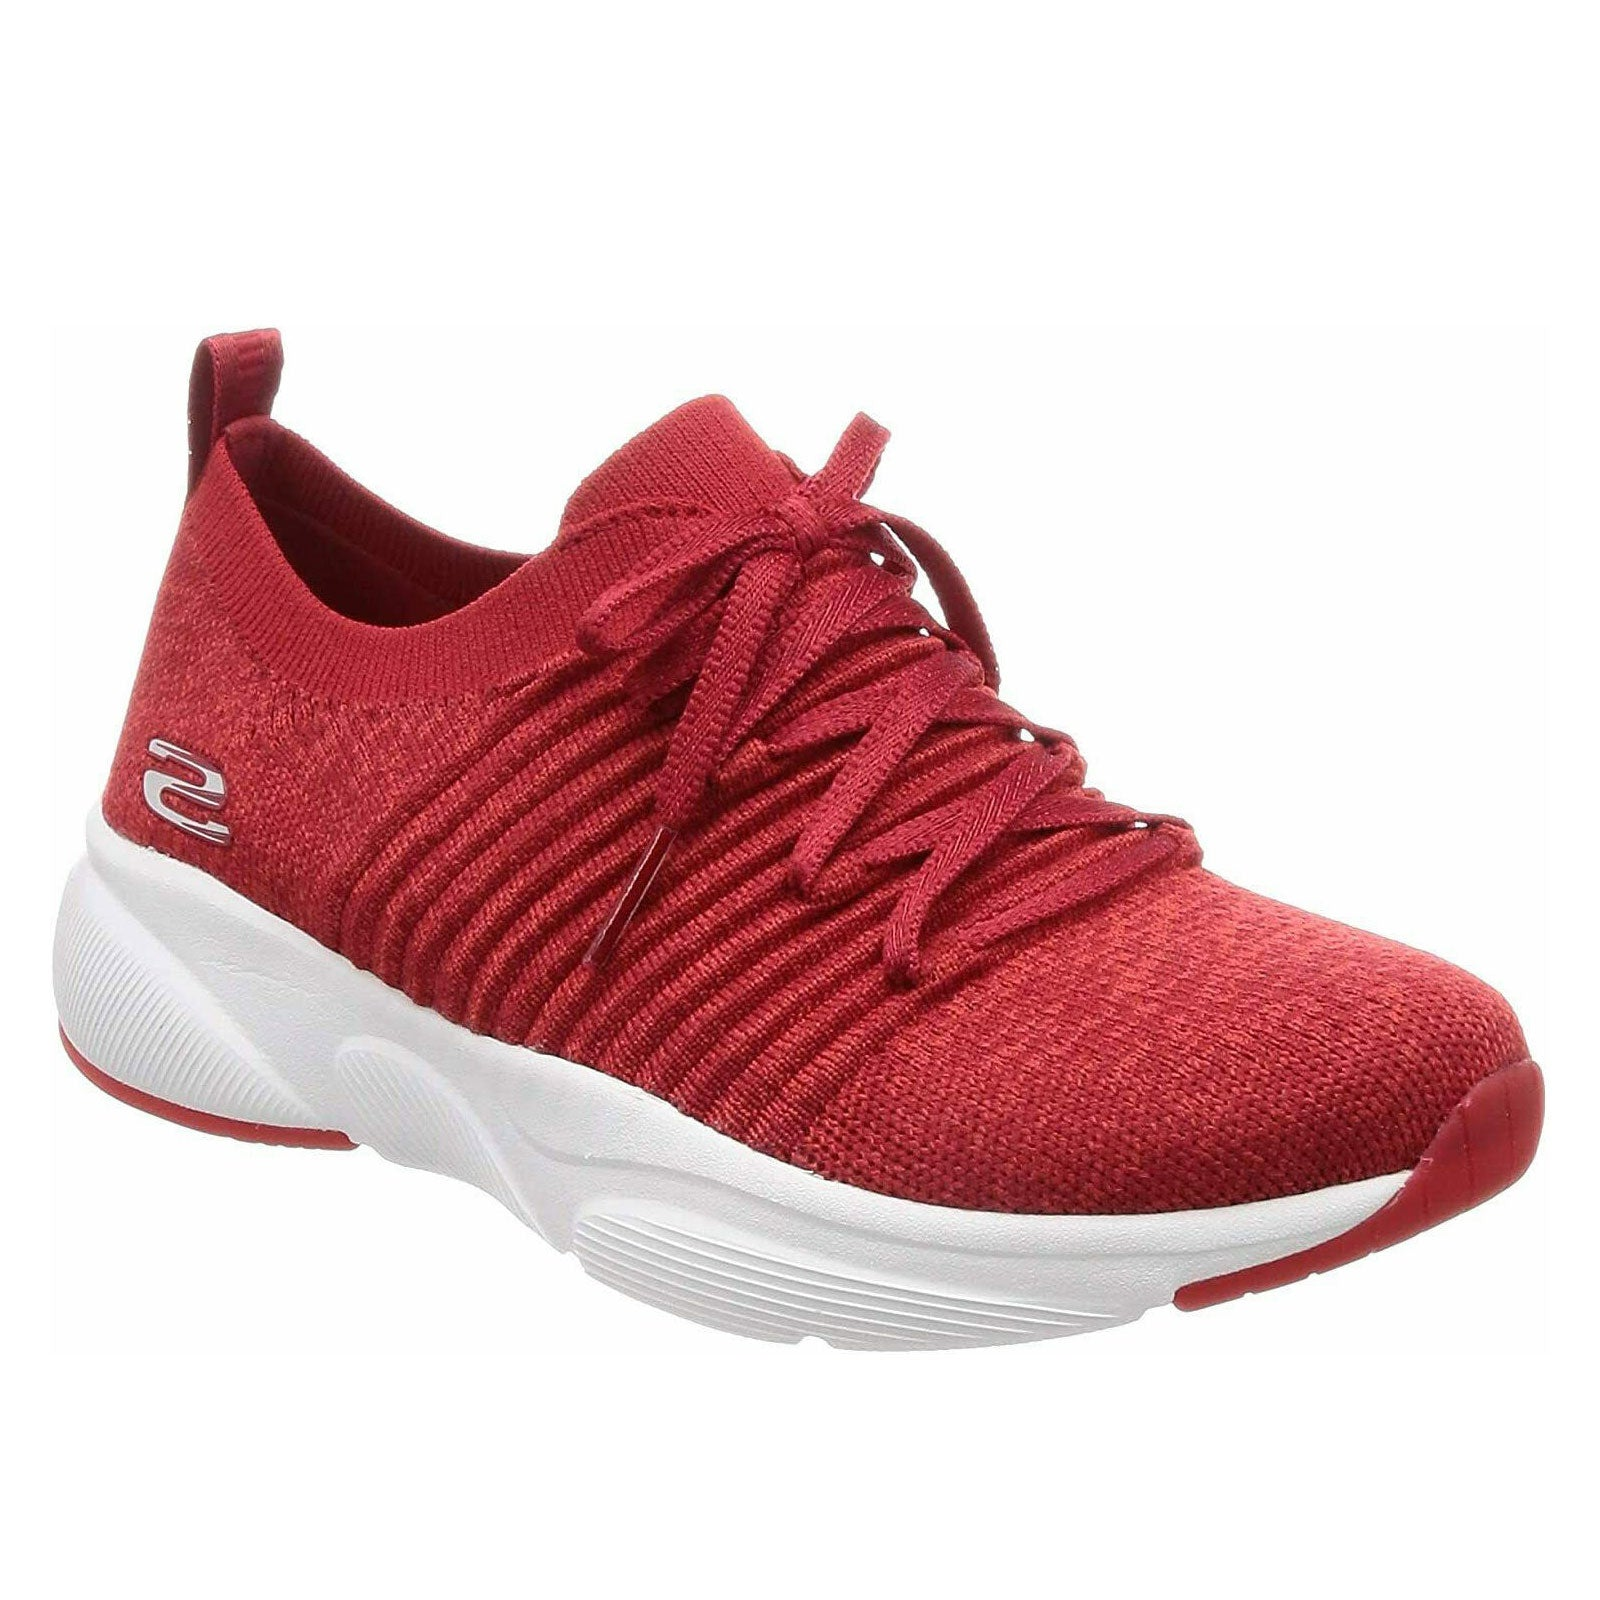 Skechers Meridian-Savvy Wind 13024 (Red)